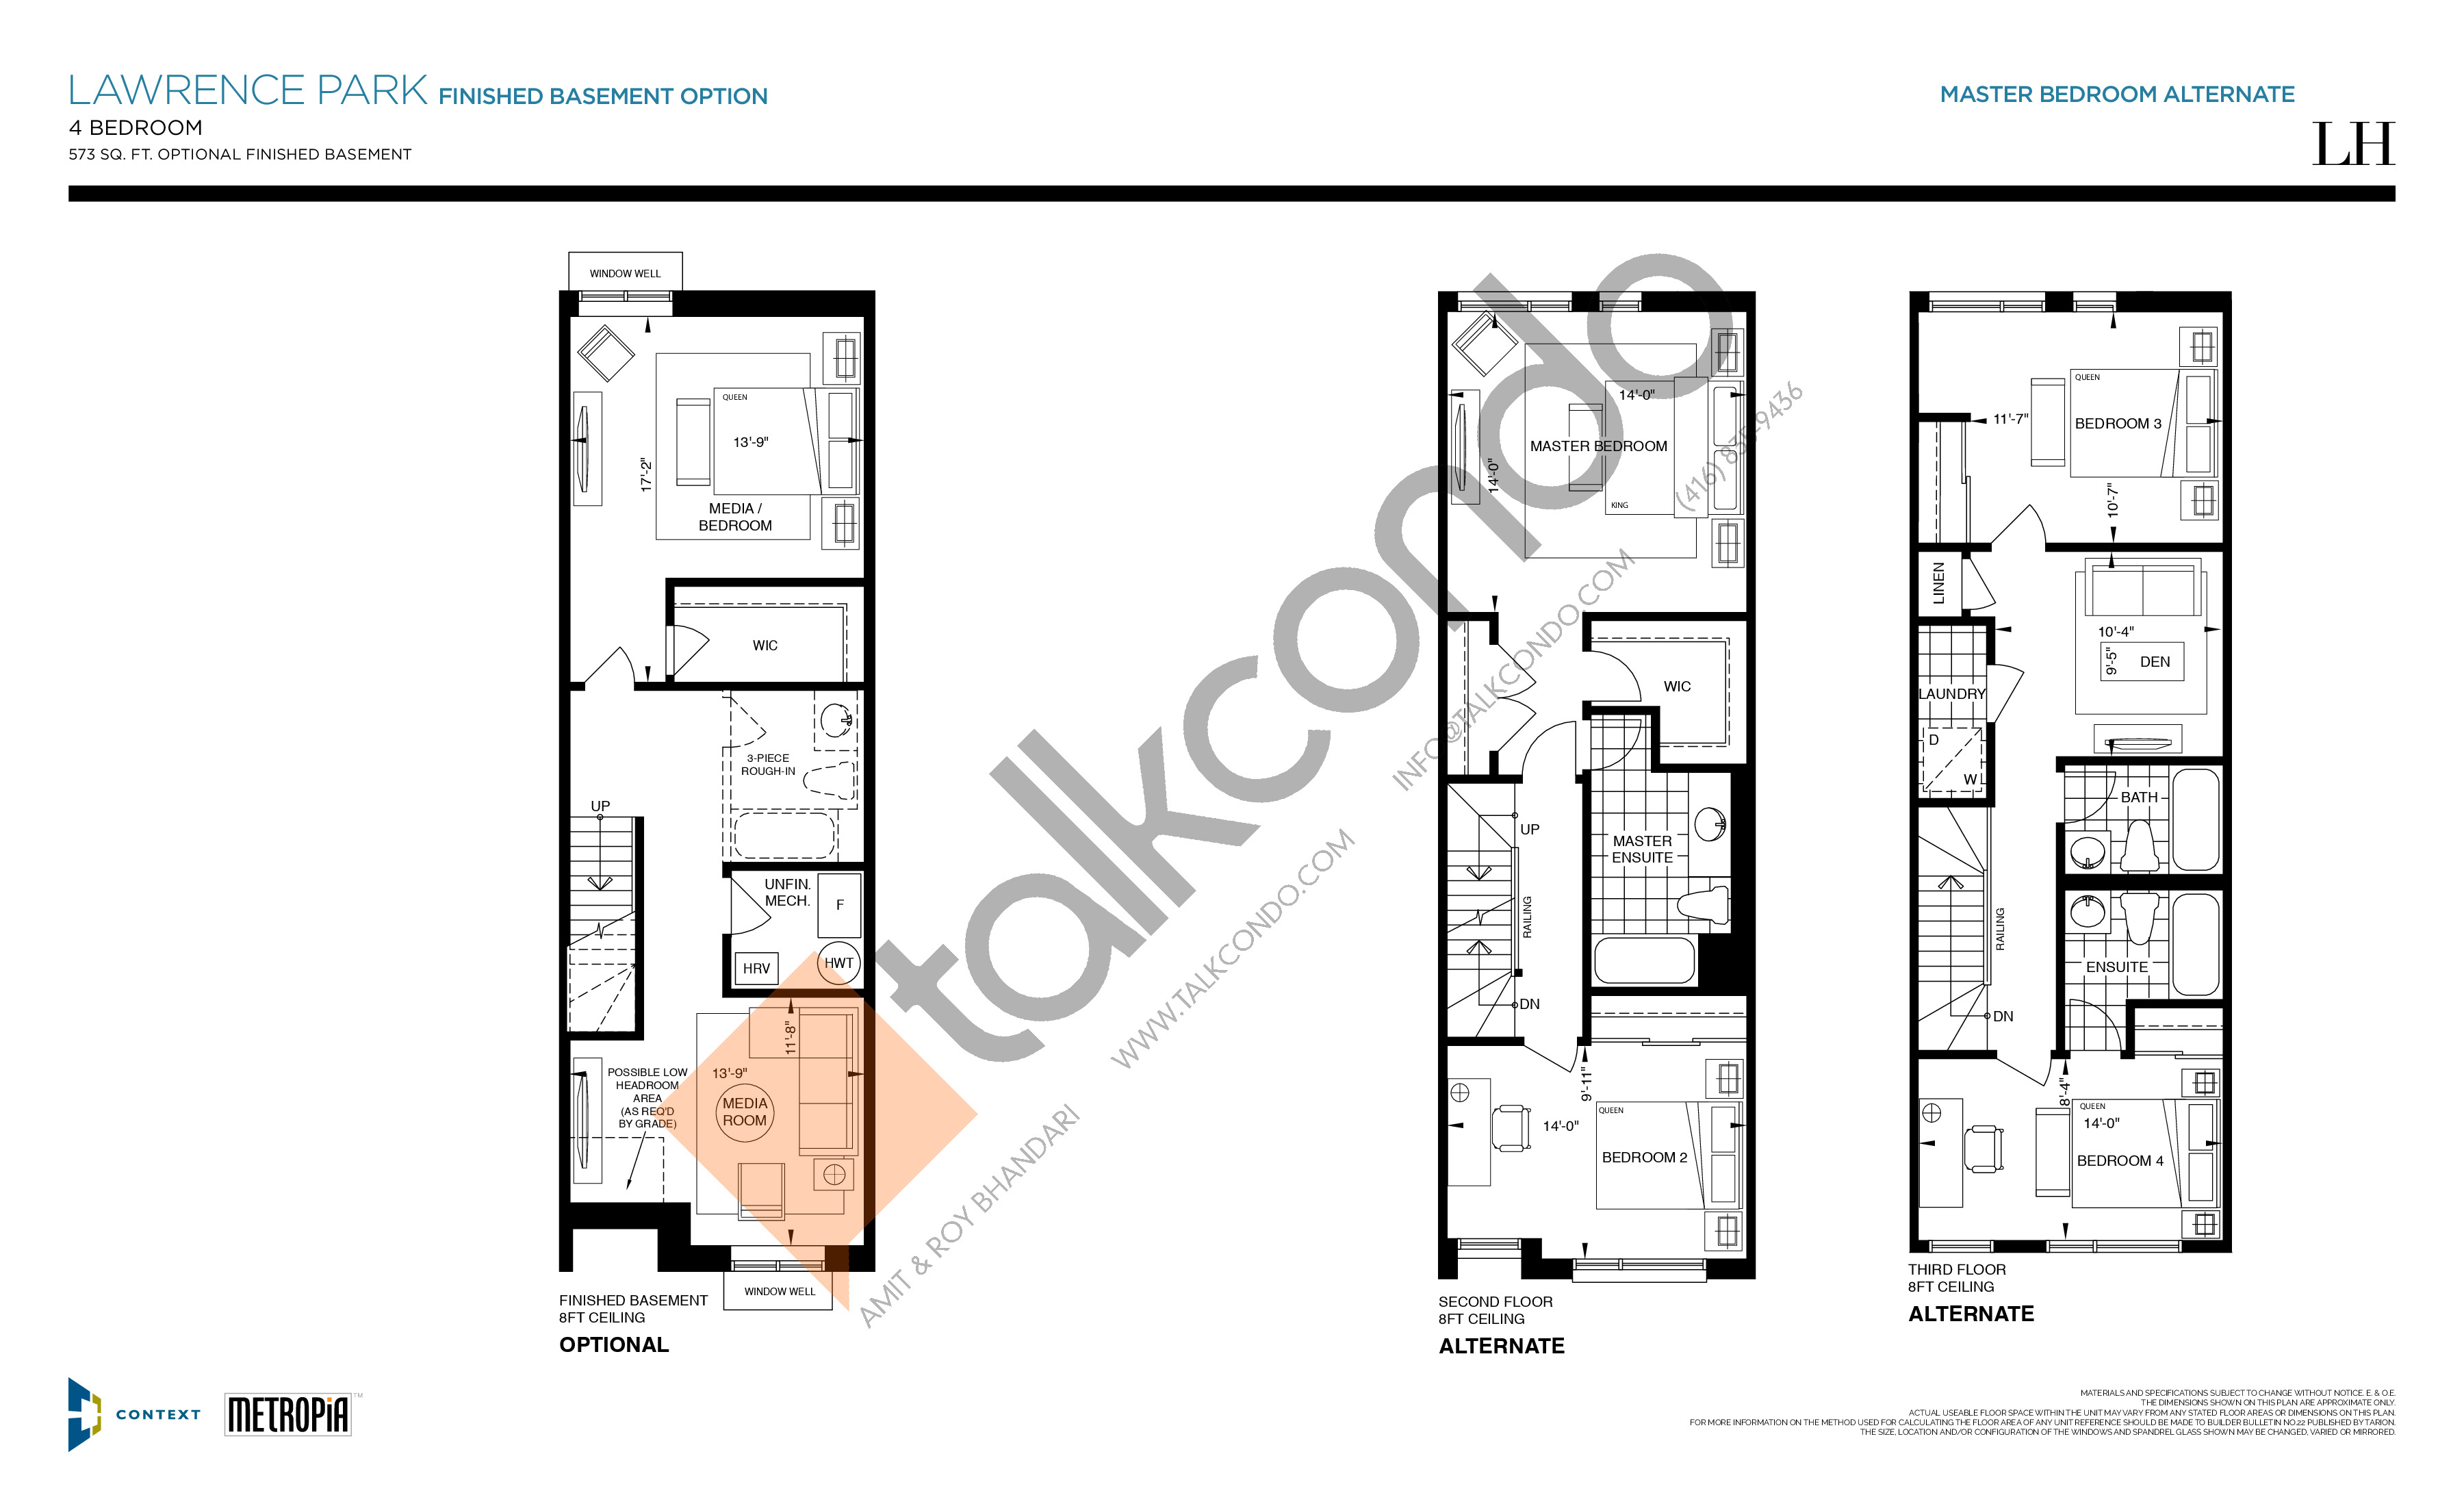 Lawrence Park (Finished Basement Option)) Floor Plan at The New Lawrence Heights Phase 2 Condos - 2579 sq.ft